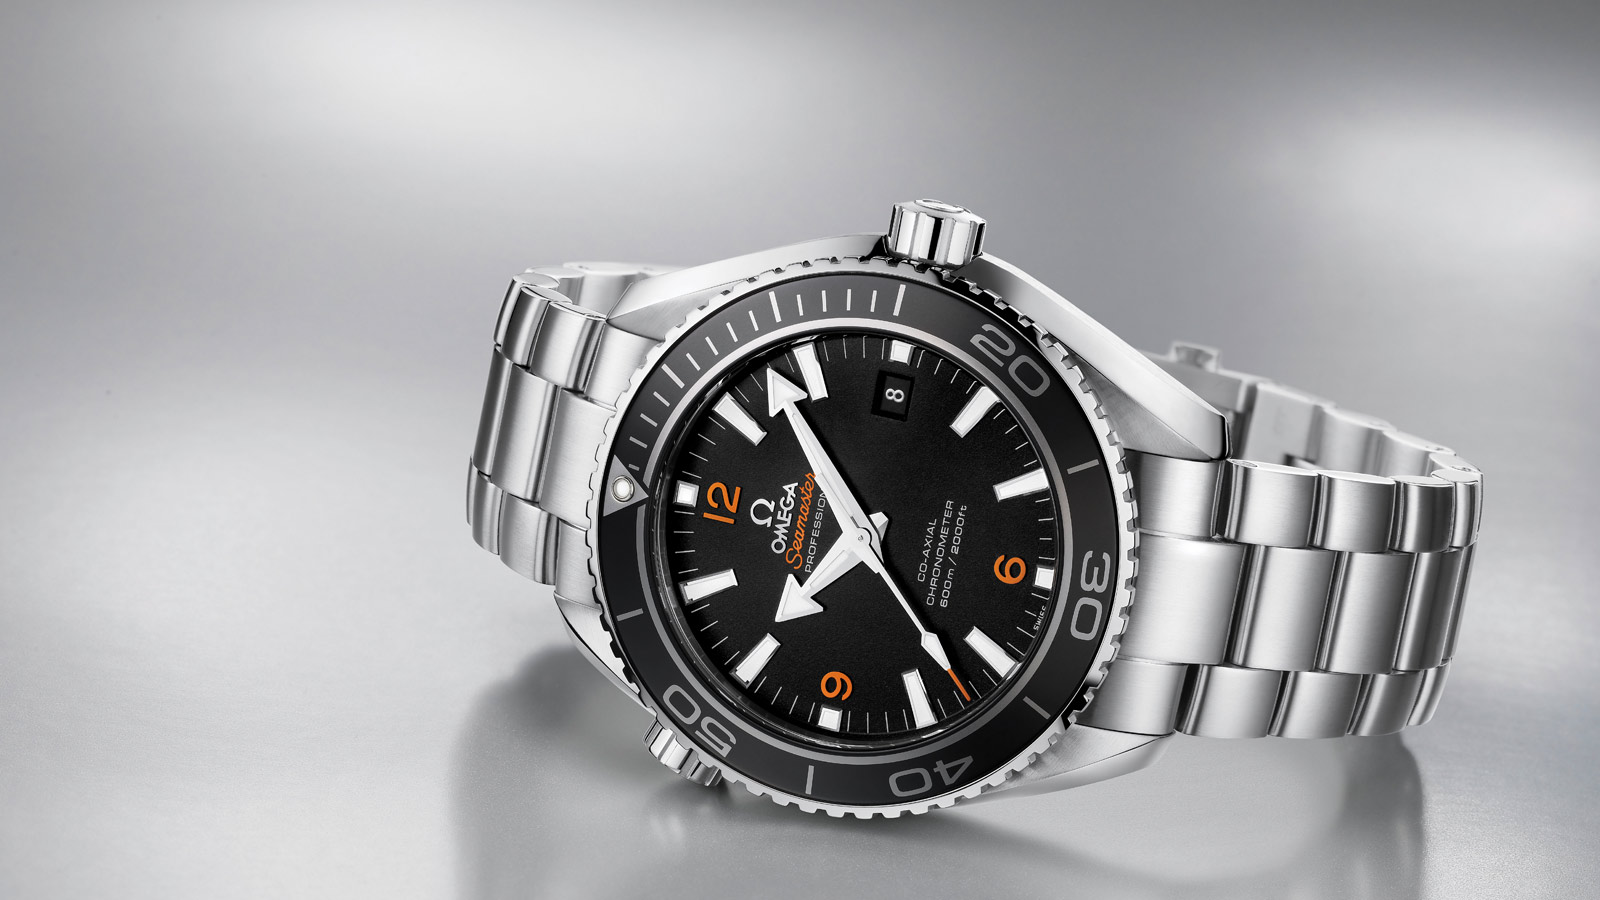 Seamaster Planet Ocean 600M Planet Ocean 600M Omega Co‑Axial 45.5 mm - 232.30.46.21.01.003 - View 1